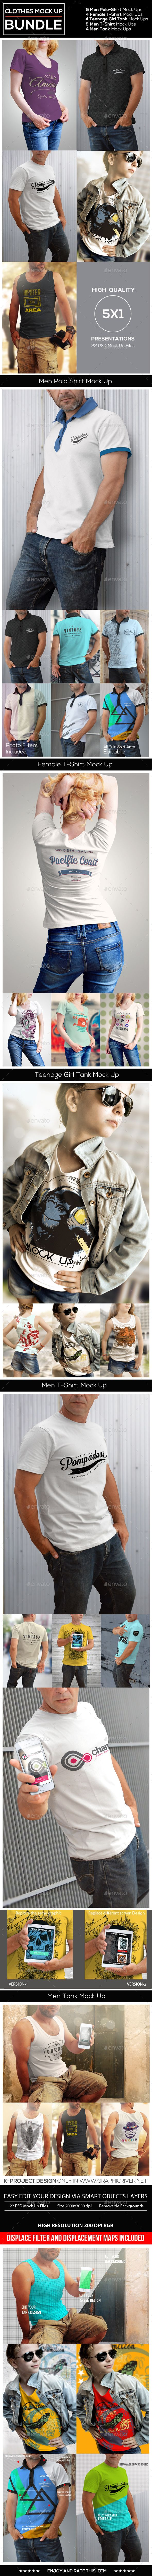 Clothes Mock Up Bundle Photoshop Psd Tank Woman Available Here